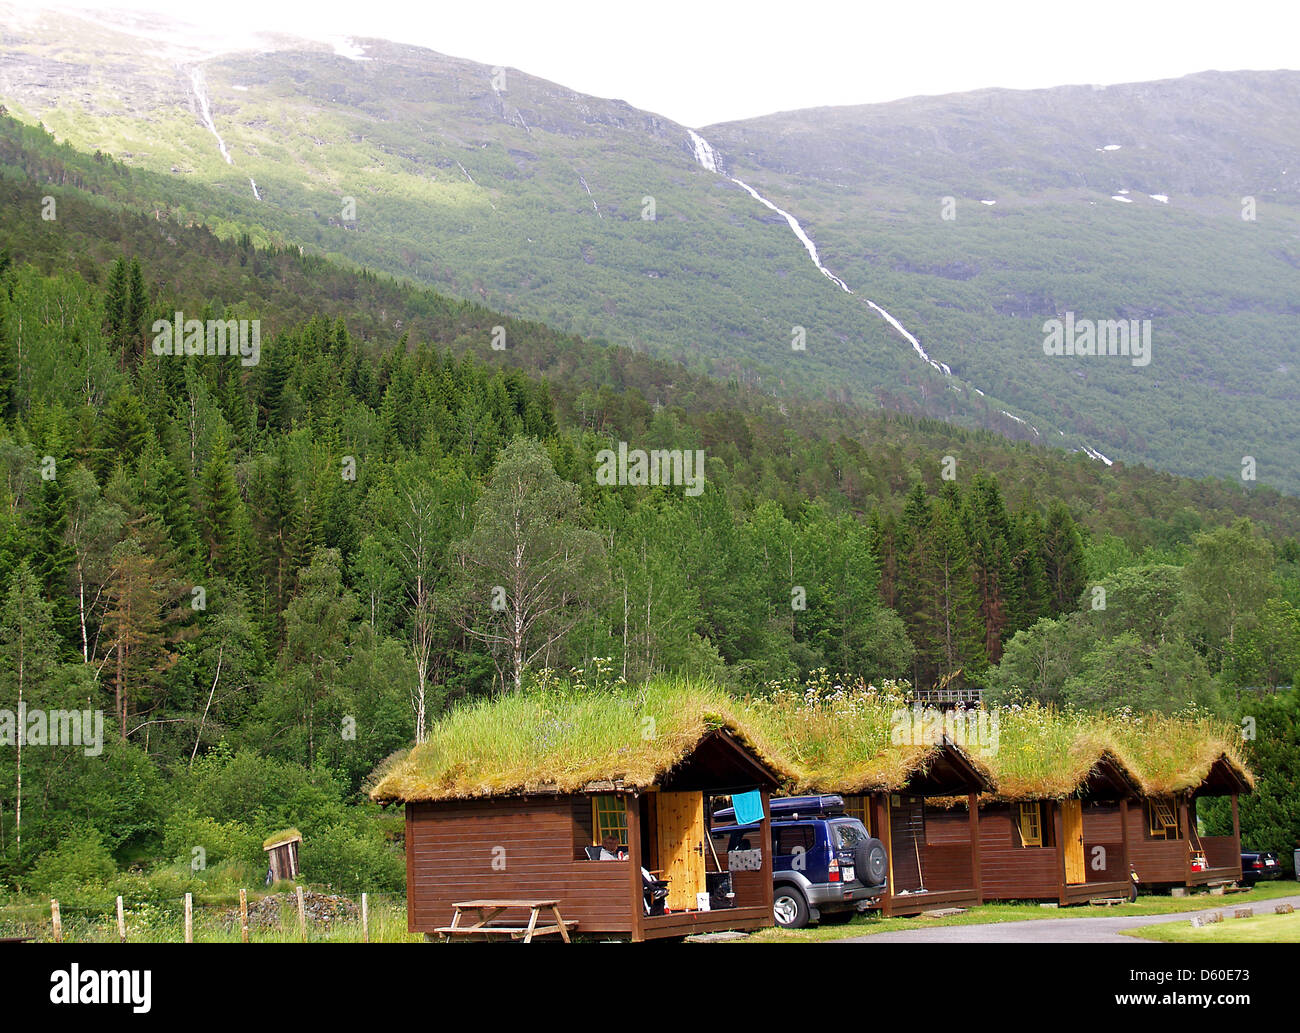 Sod roof cabins near Hellesylt,Norway - Stock Image